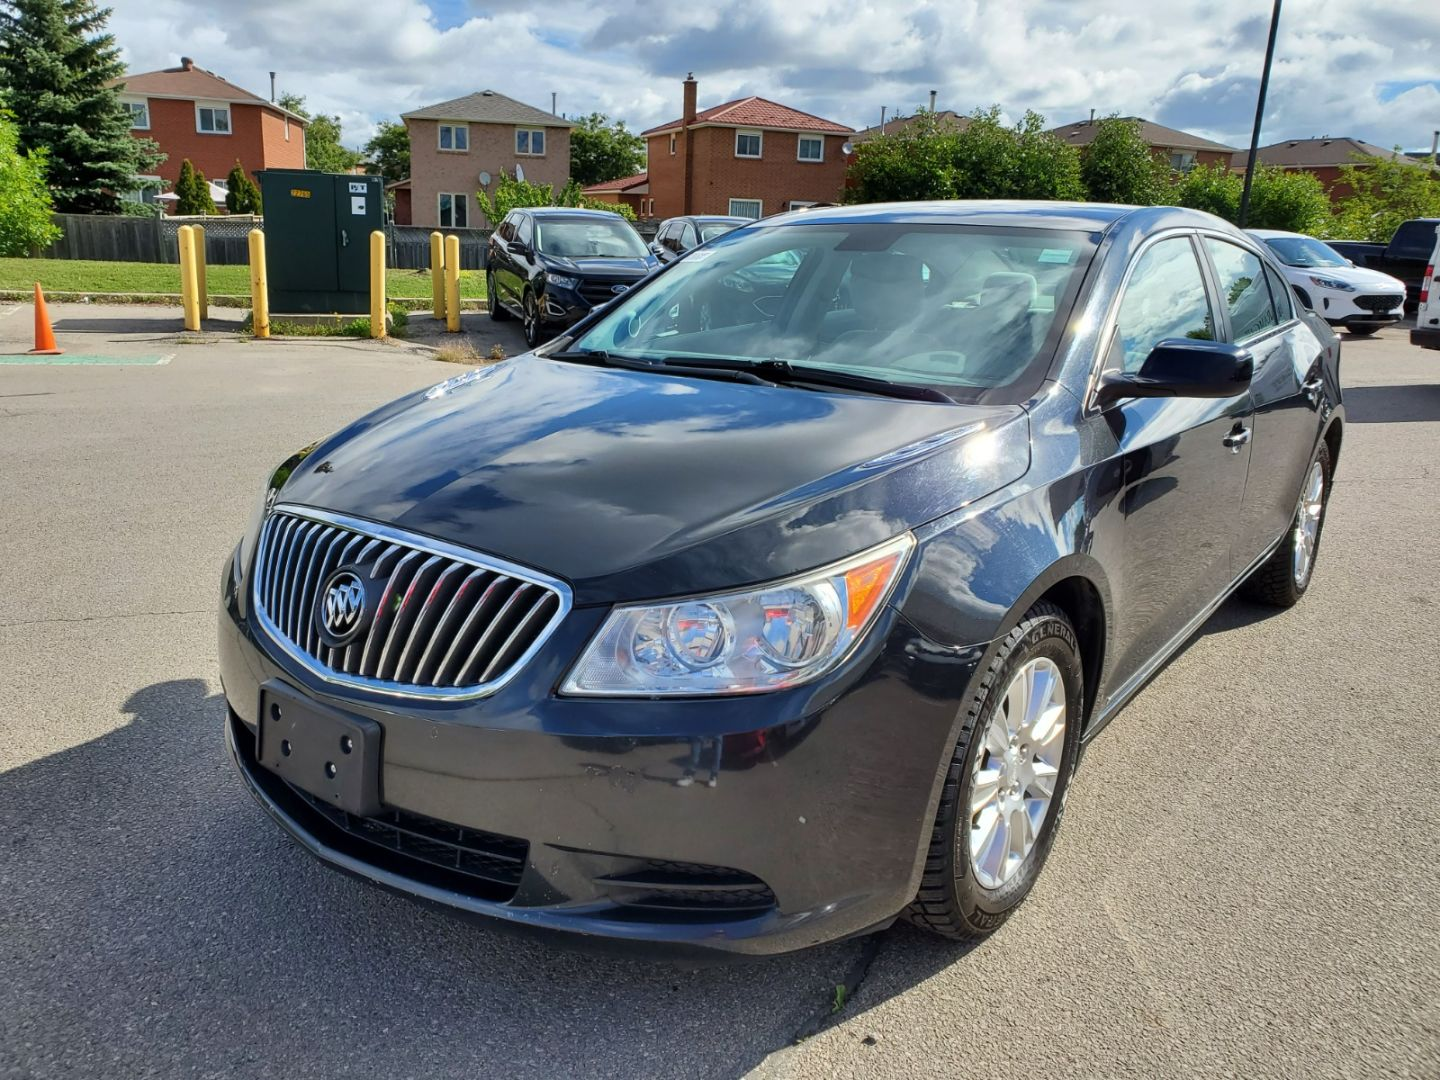 2013 Buick LaCrosse  for sale in Mississauga, Ontario